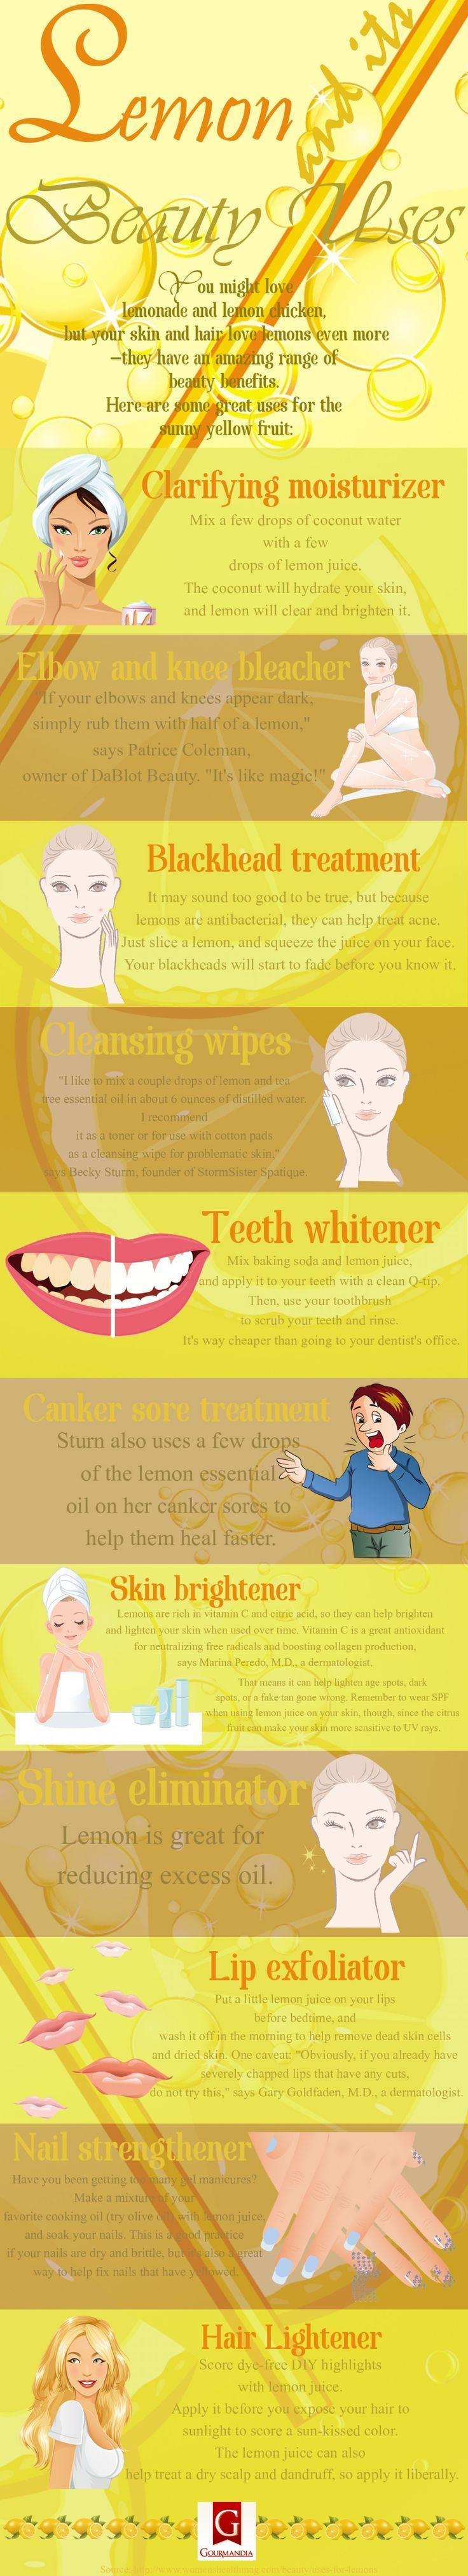 For Love and Lemons. Who knew lemons could be such great natural resources … especially for whitening your teeth before those up close and personal wedding photo sessions. Info via Women's Health Mag.